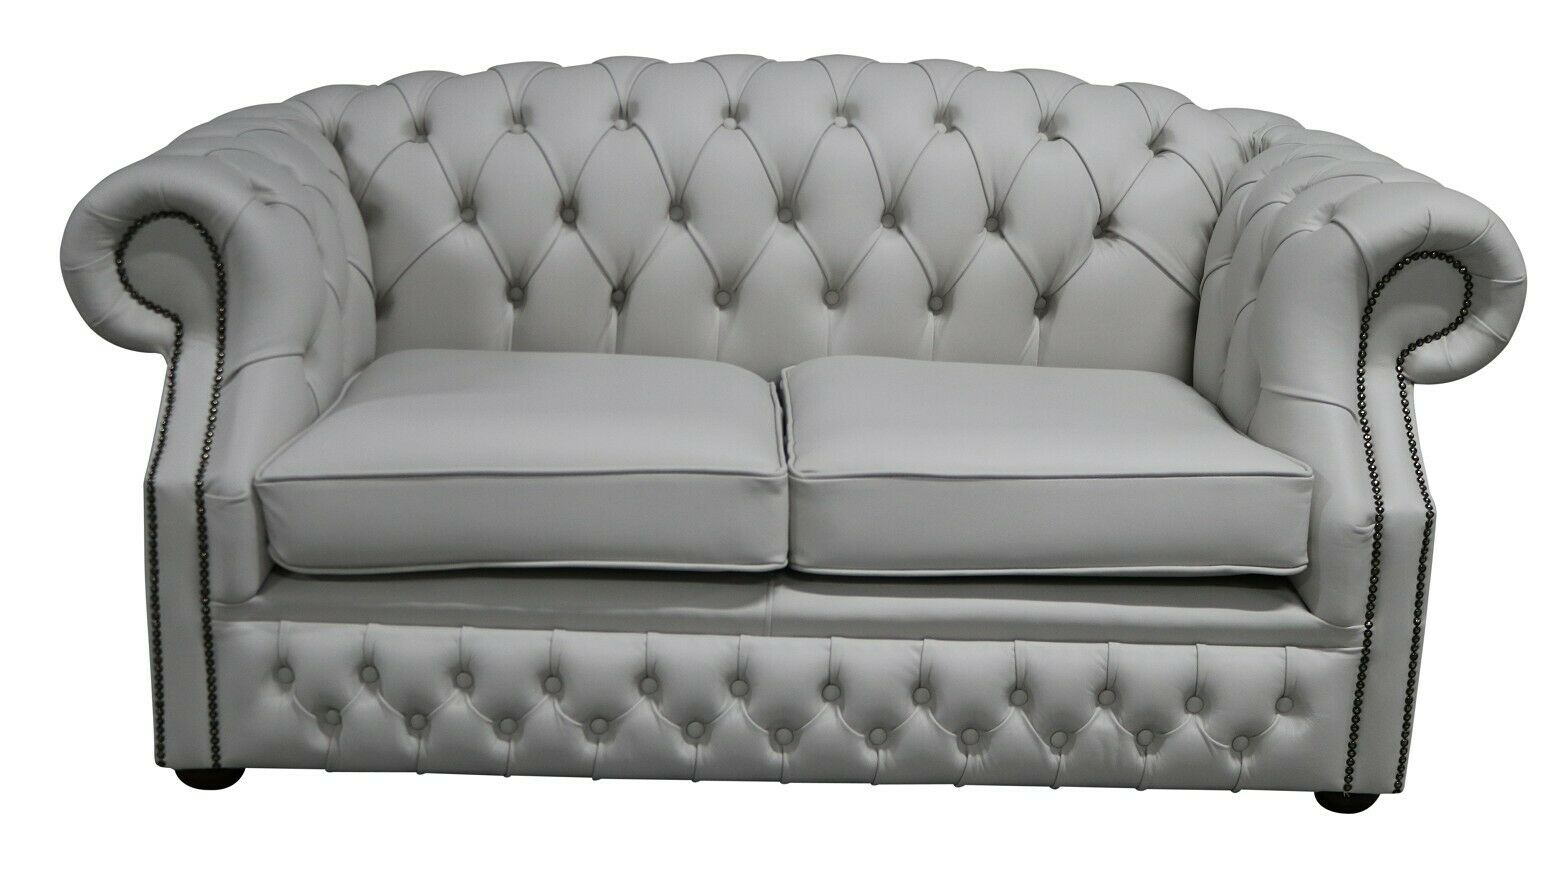 Phenomenal Details About Chesterfield Buckingham 2 Seater Shelly Sealy Leather Sofa Settee Evergreenethics Interior Chair Design Evergreenethicsorg